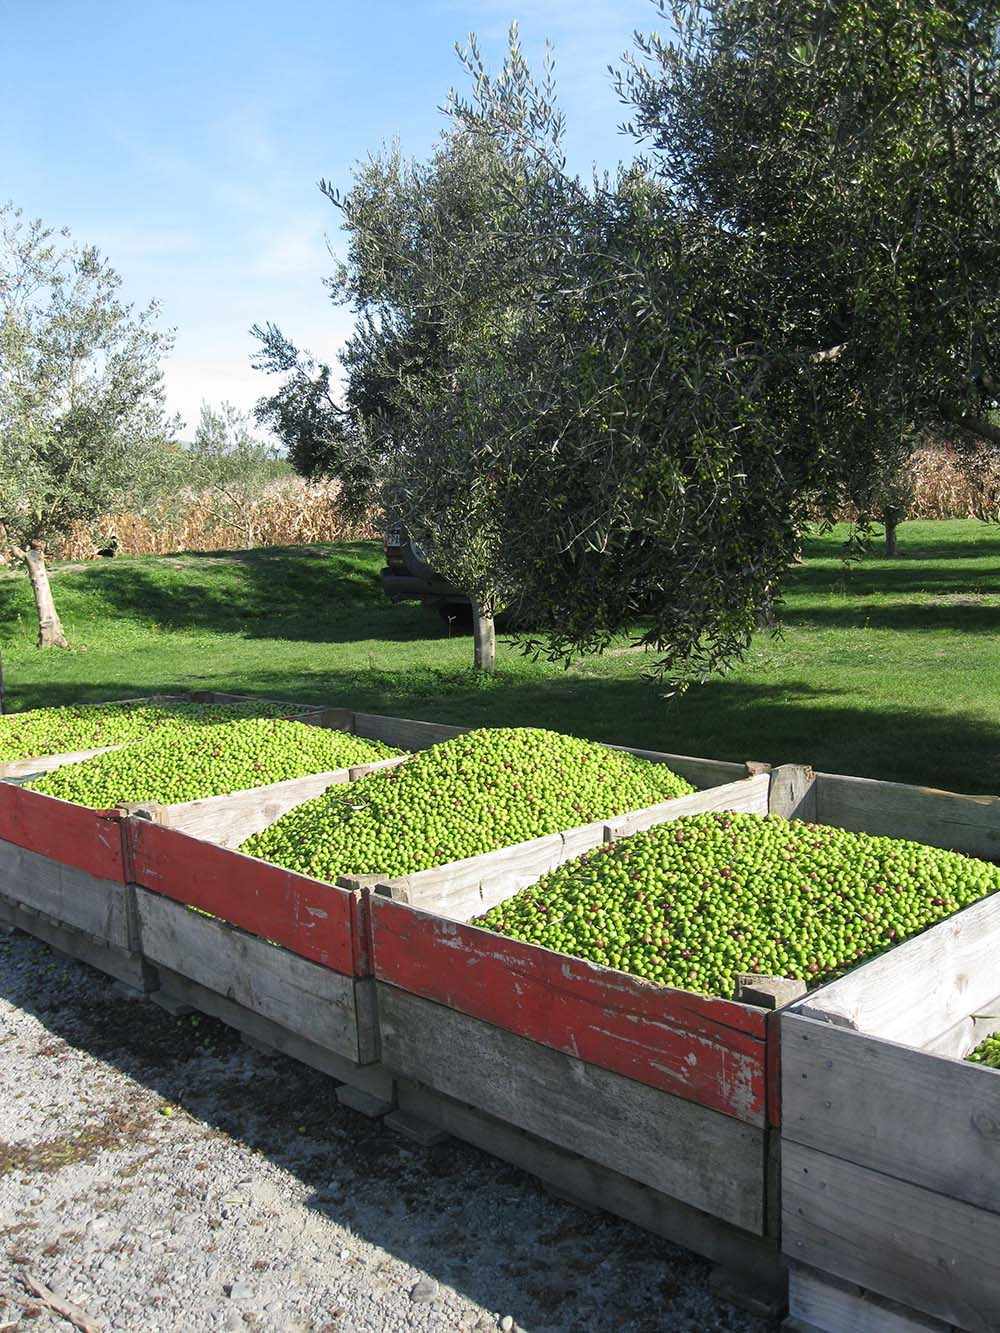 hawkes-bay-olives-on-hunter-gatherer-tours-with-Juliet-Harbutt